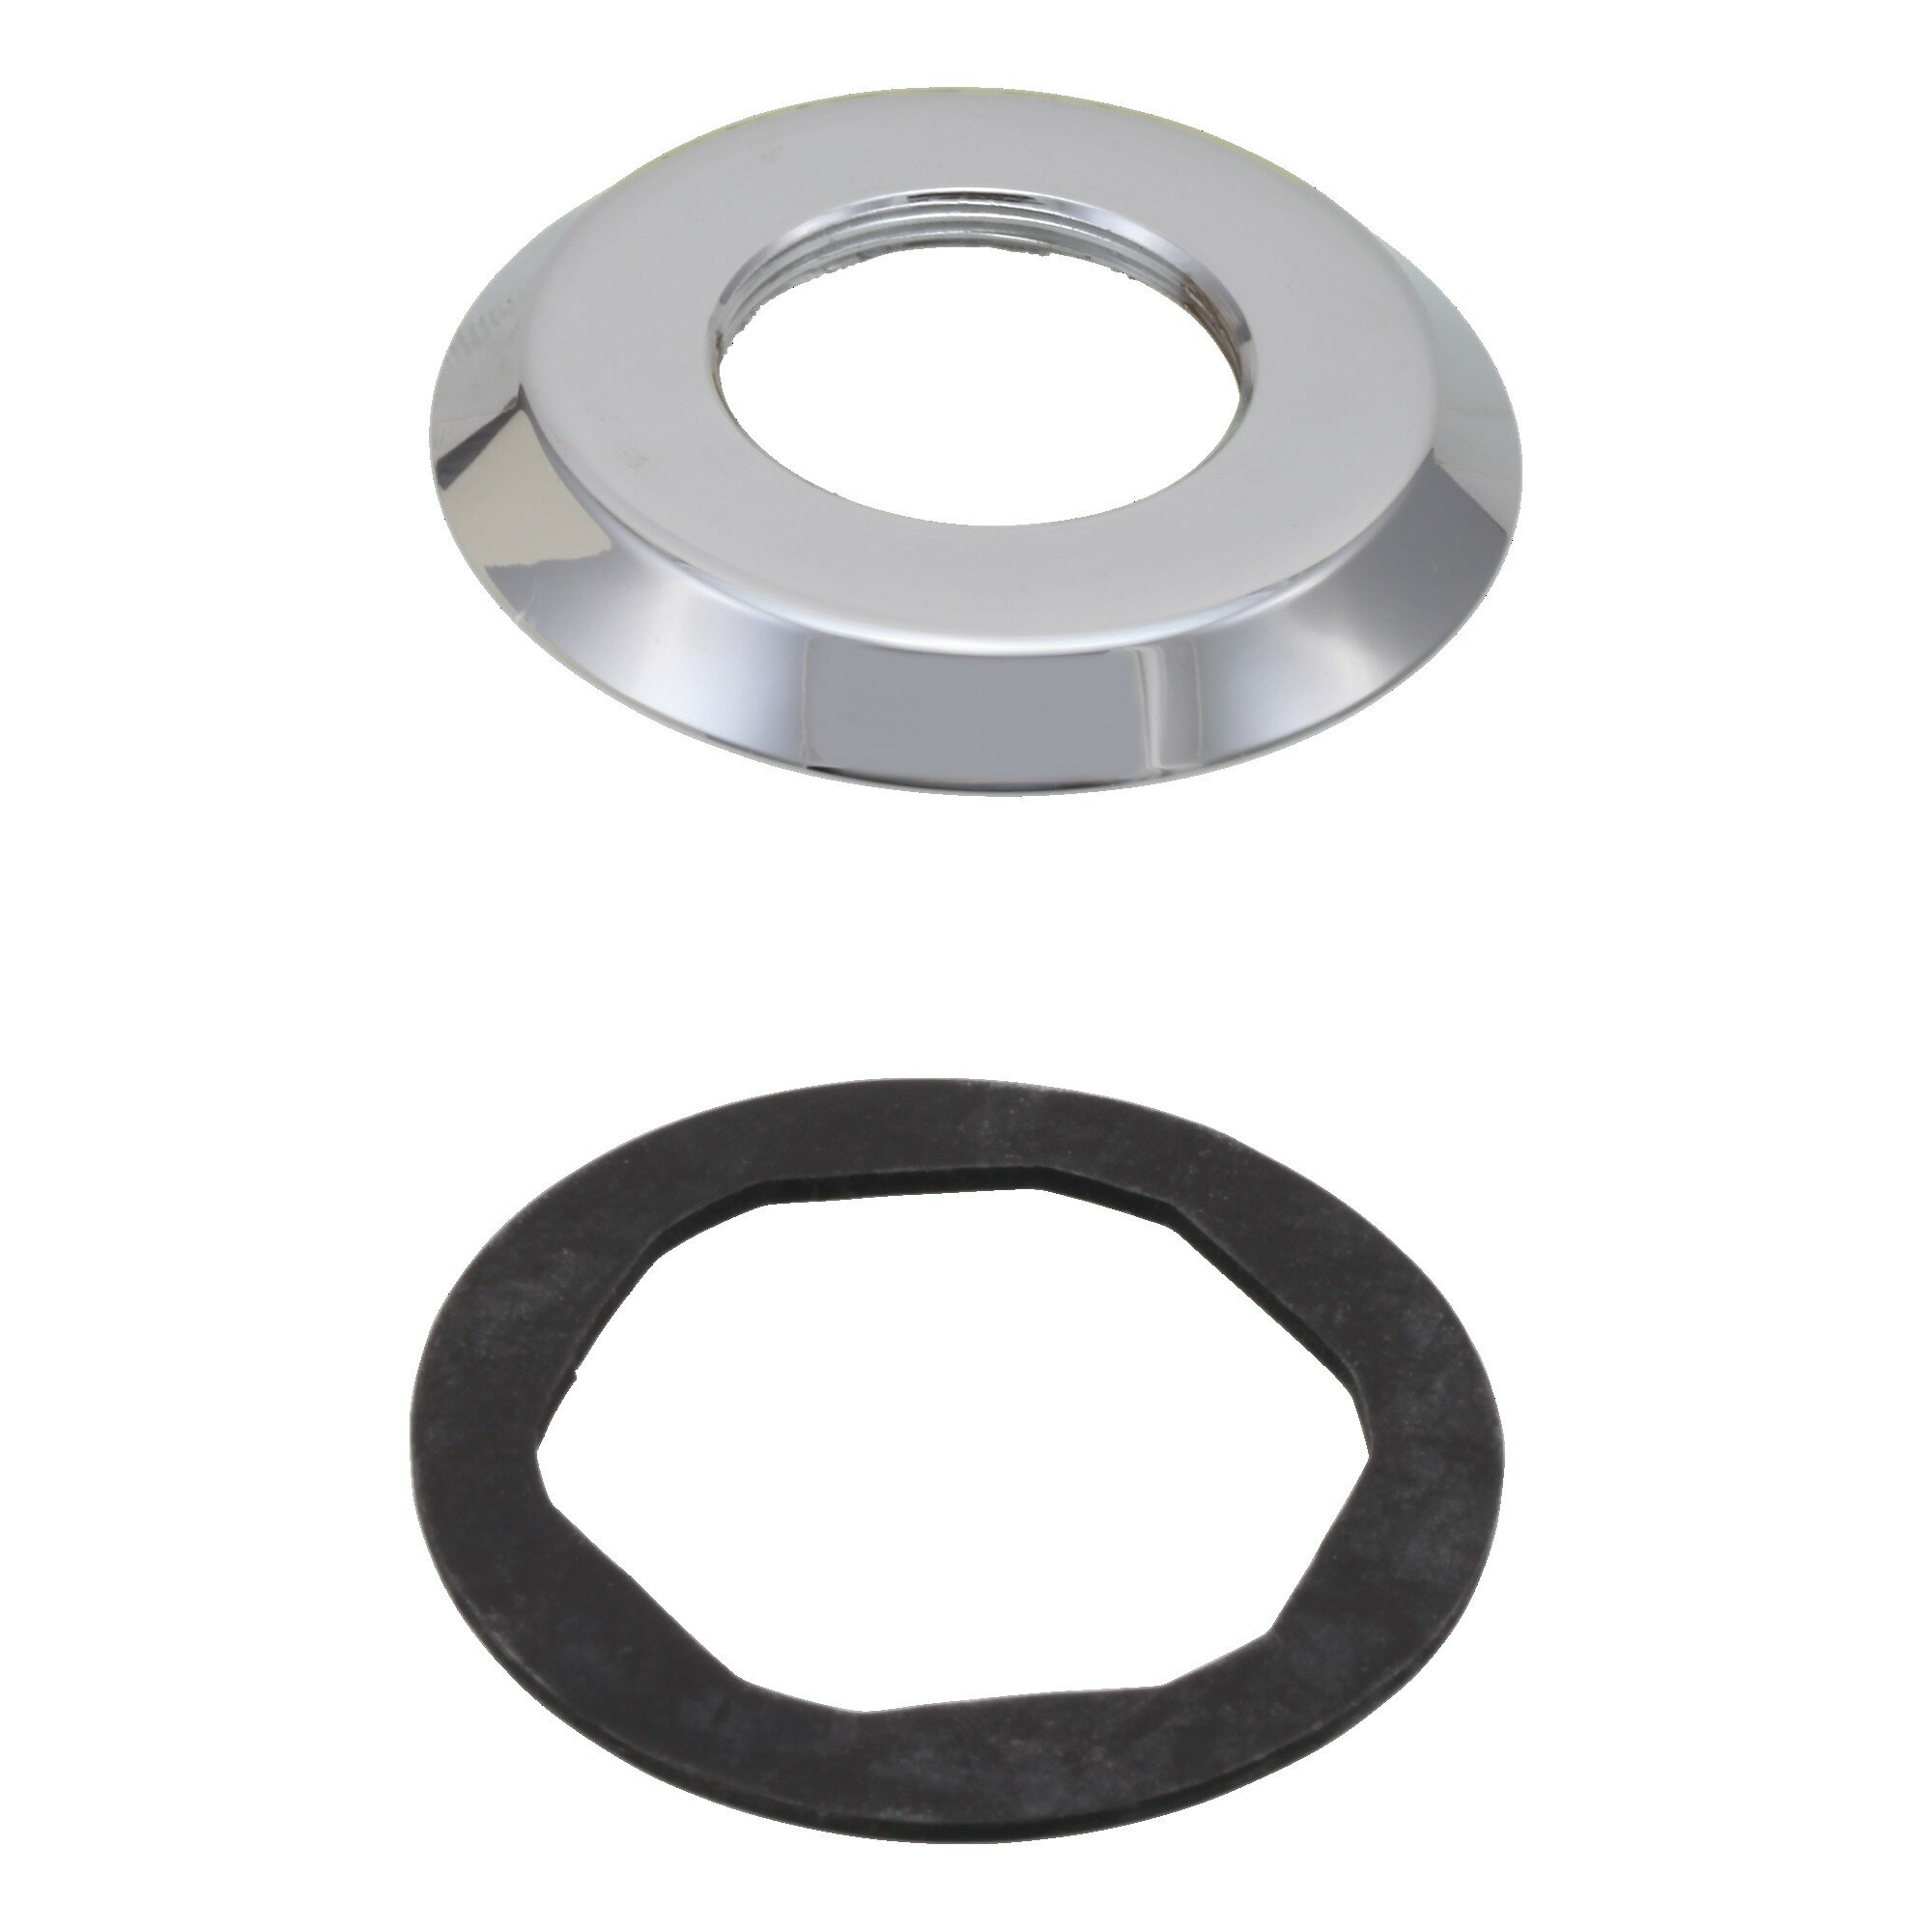 Delta Replacement Gasket and Base for Roman Tub Faucet | Wayfair